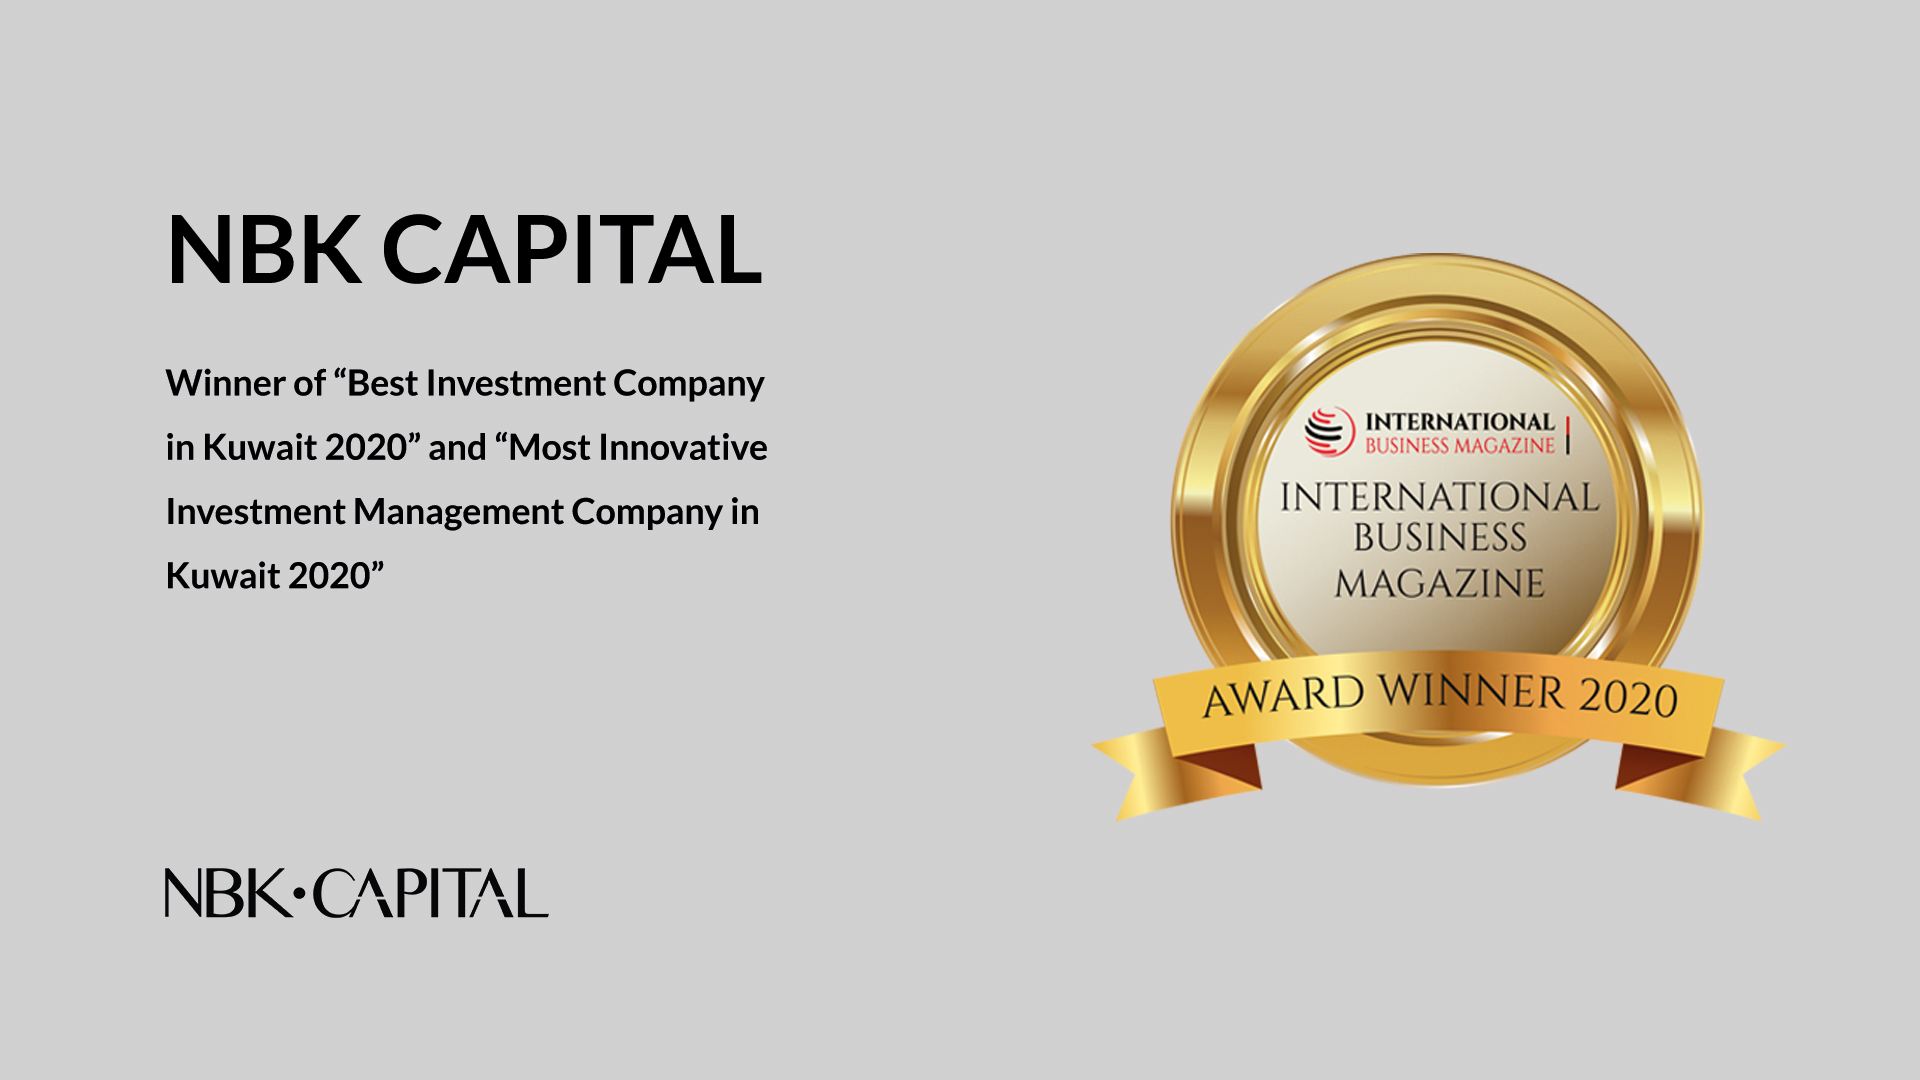 """NBK Capital: Winner of """"Best Investment Company in Kuwait 2020"""" and """"Most Innovative Investment Management Company in Kuwait 2020"""""""